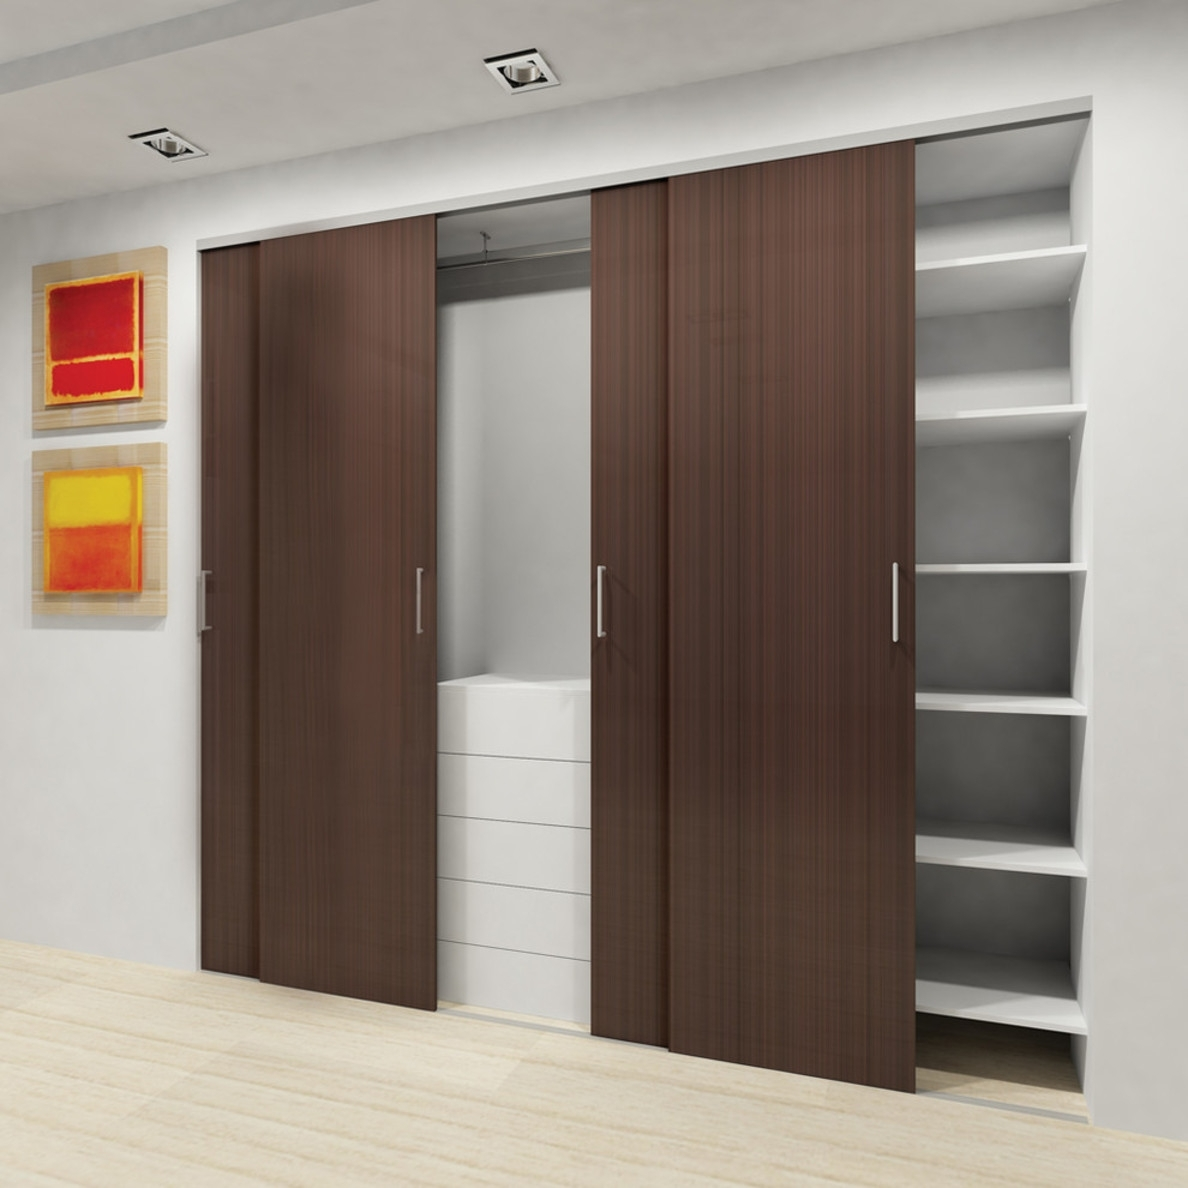 Bedroom Closet Doors Ideas — Randolph Indoor and Outdoor Design